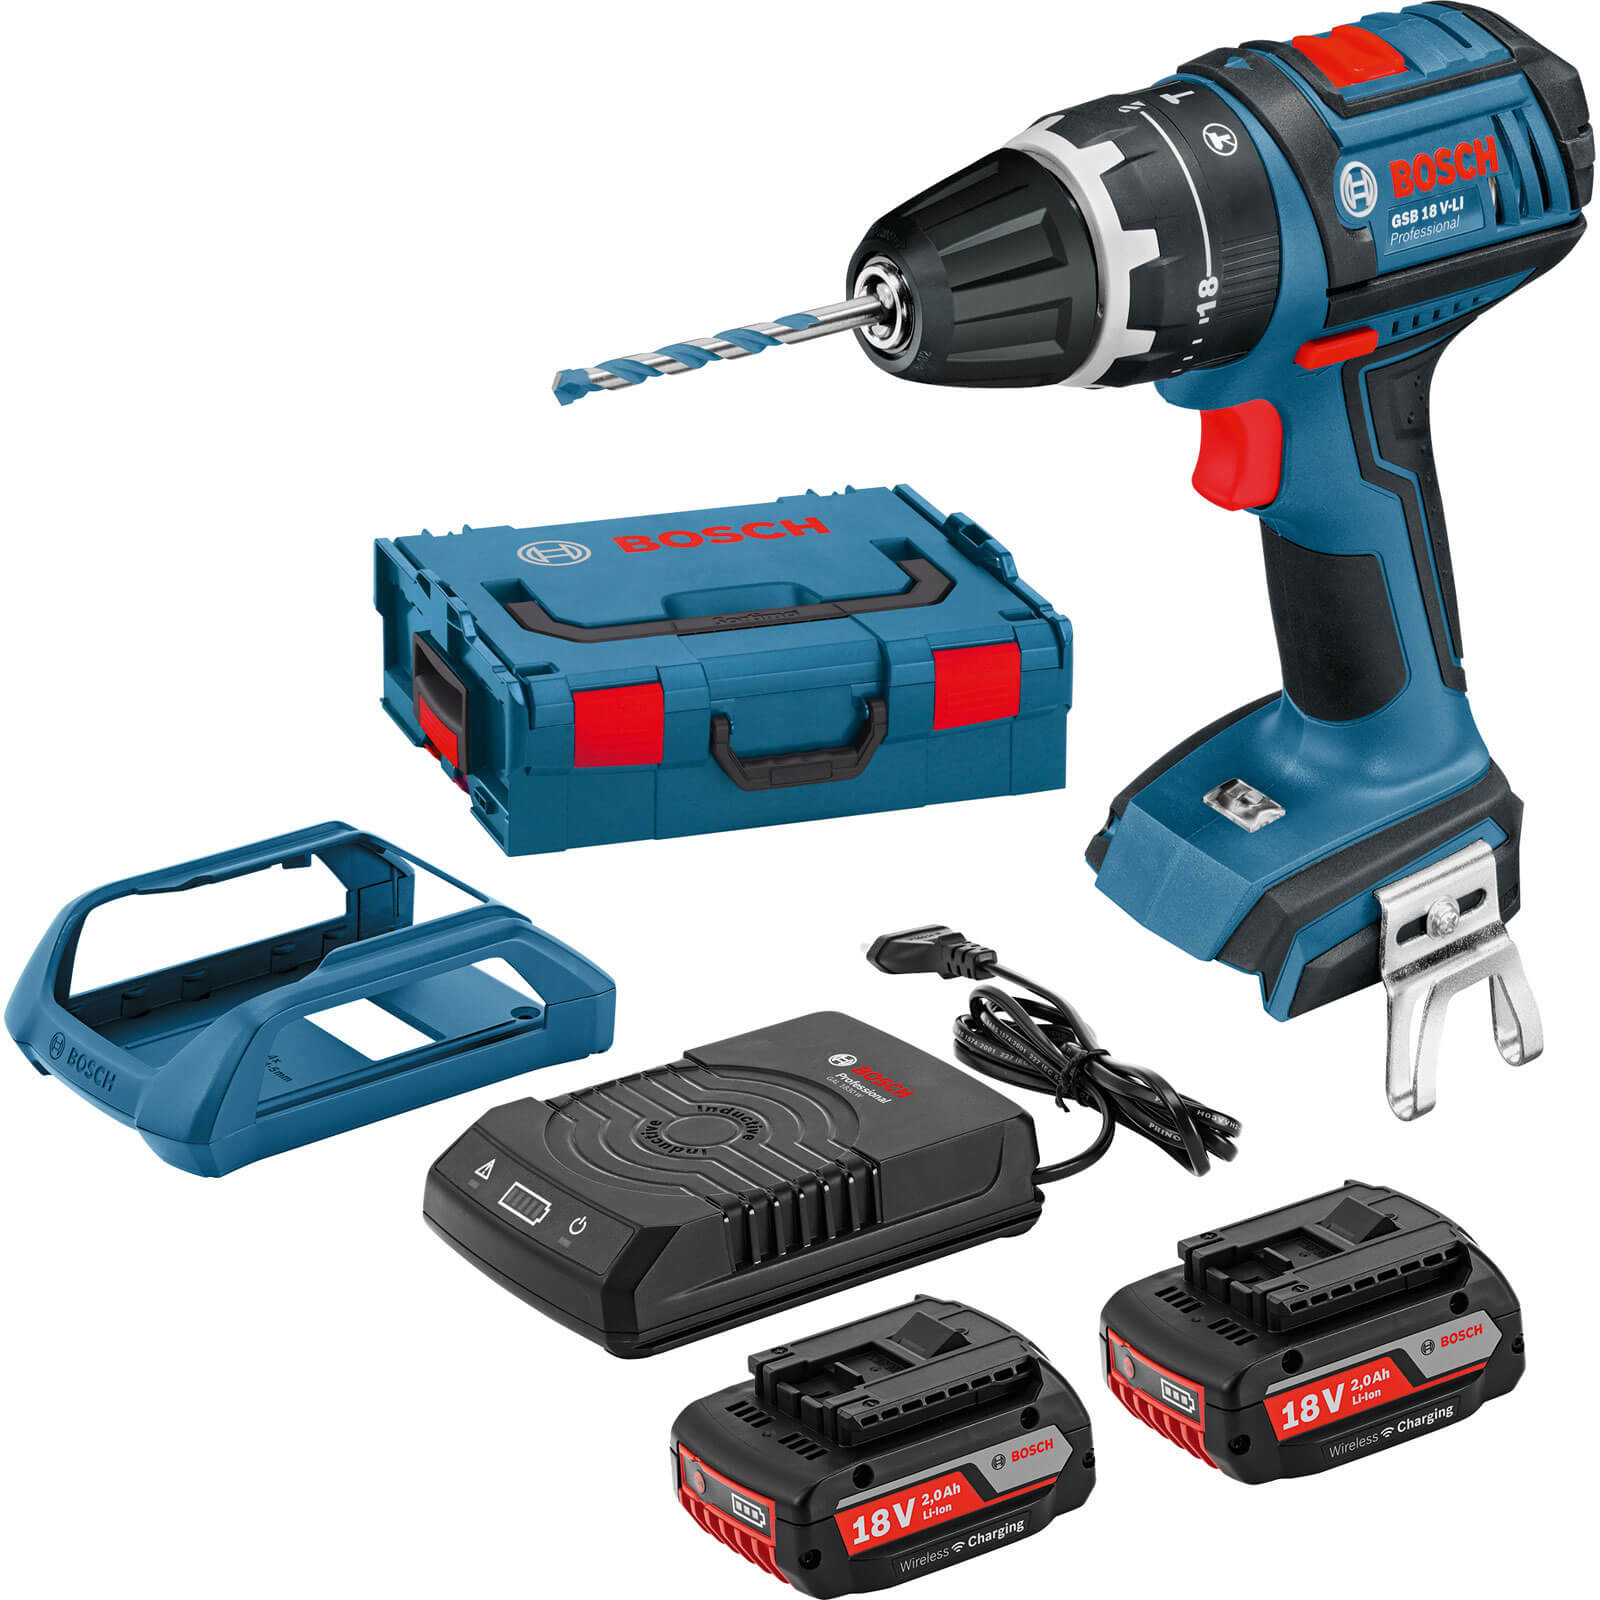 Bosch 18V Cordless Dynamicseries Wireless Combi Drill 2 x 2ah Liion Charger Case